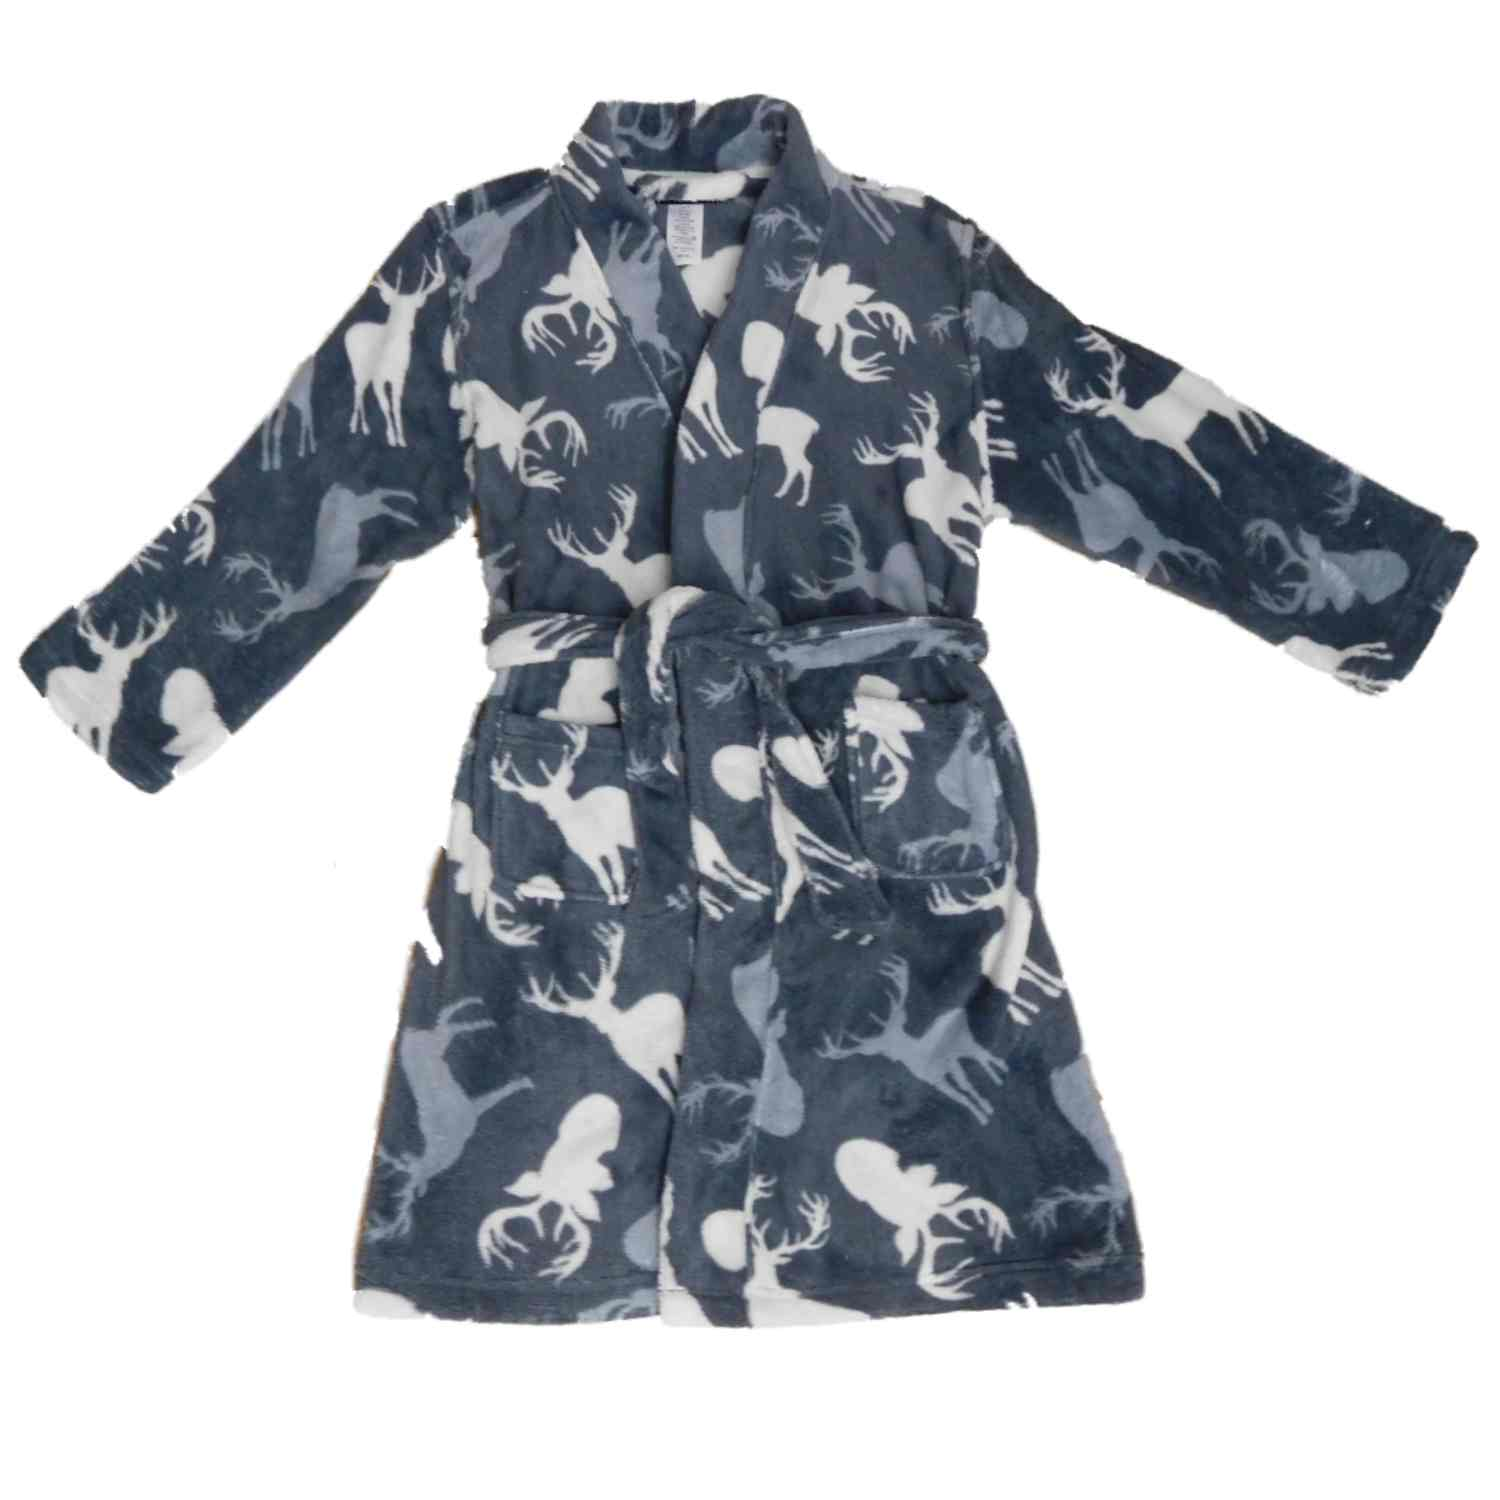 Boys Gray Plush Gray & White Tail Deer House Coat Bath Robe